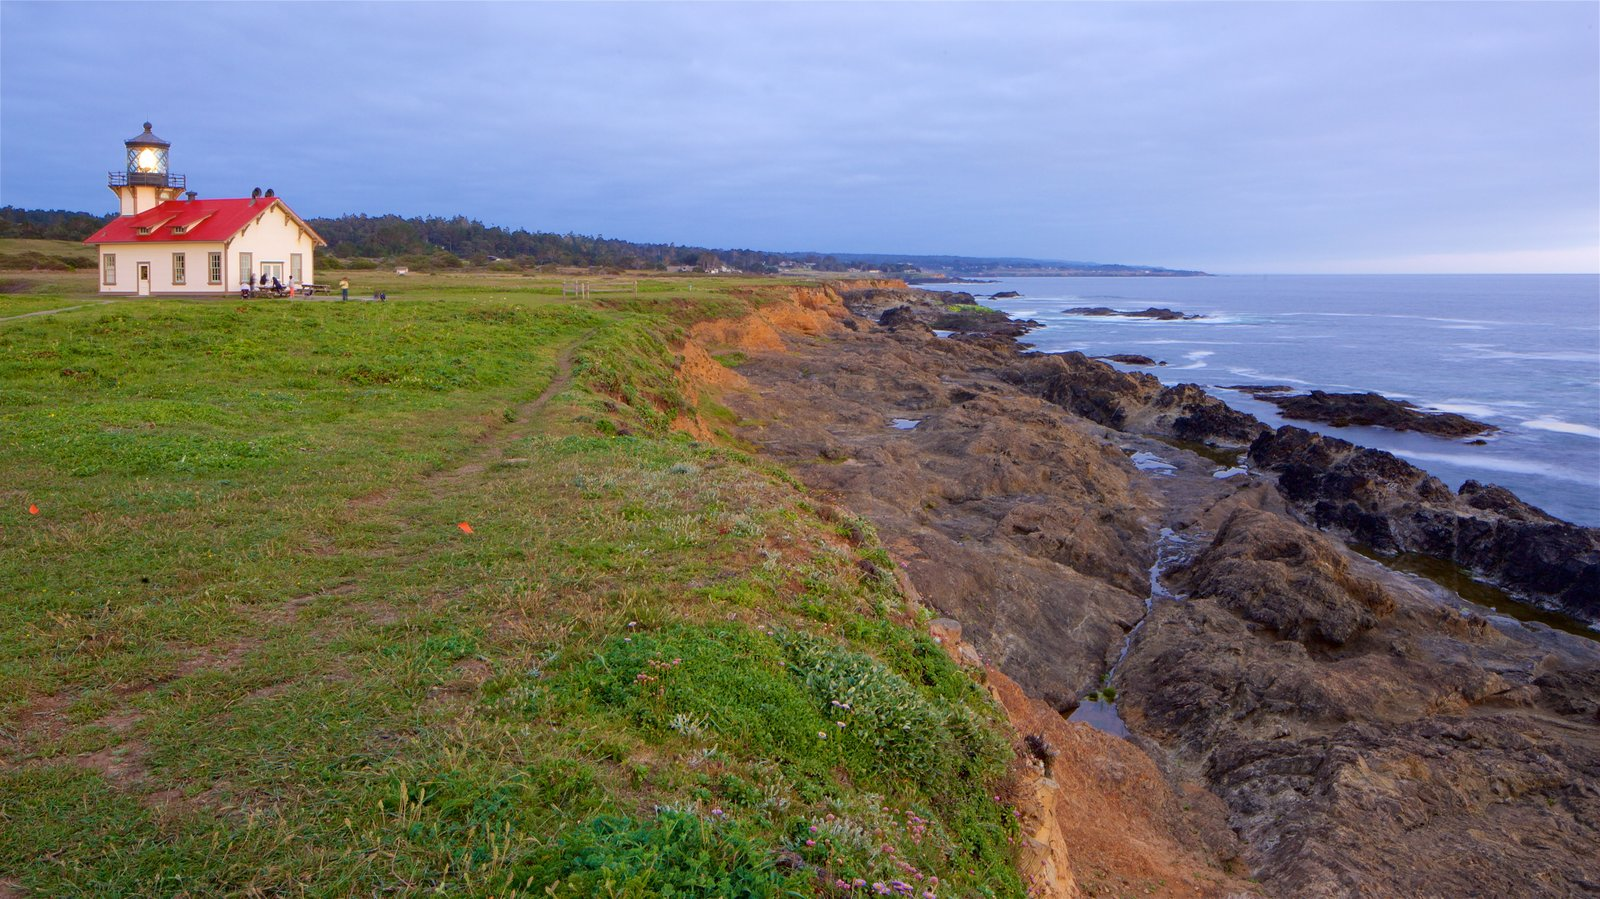 Mendocino showing general coastal views, rocky coastline and a lighthouse